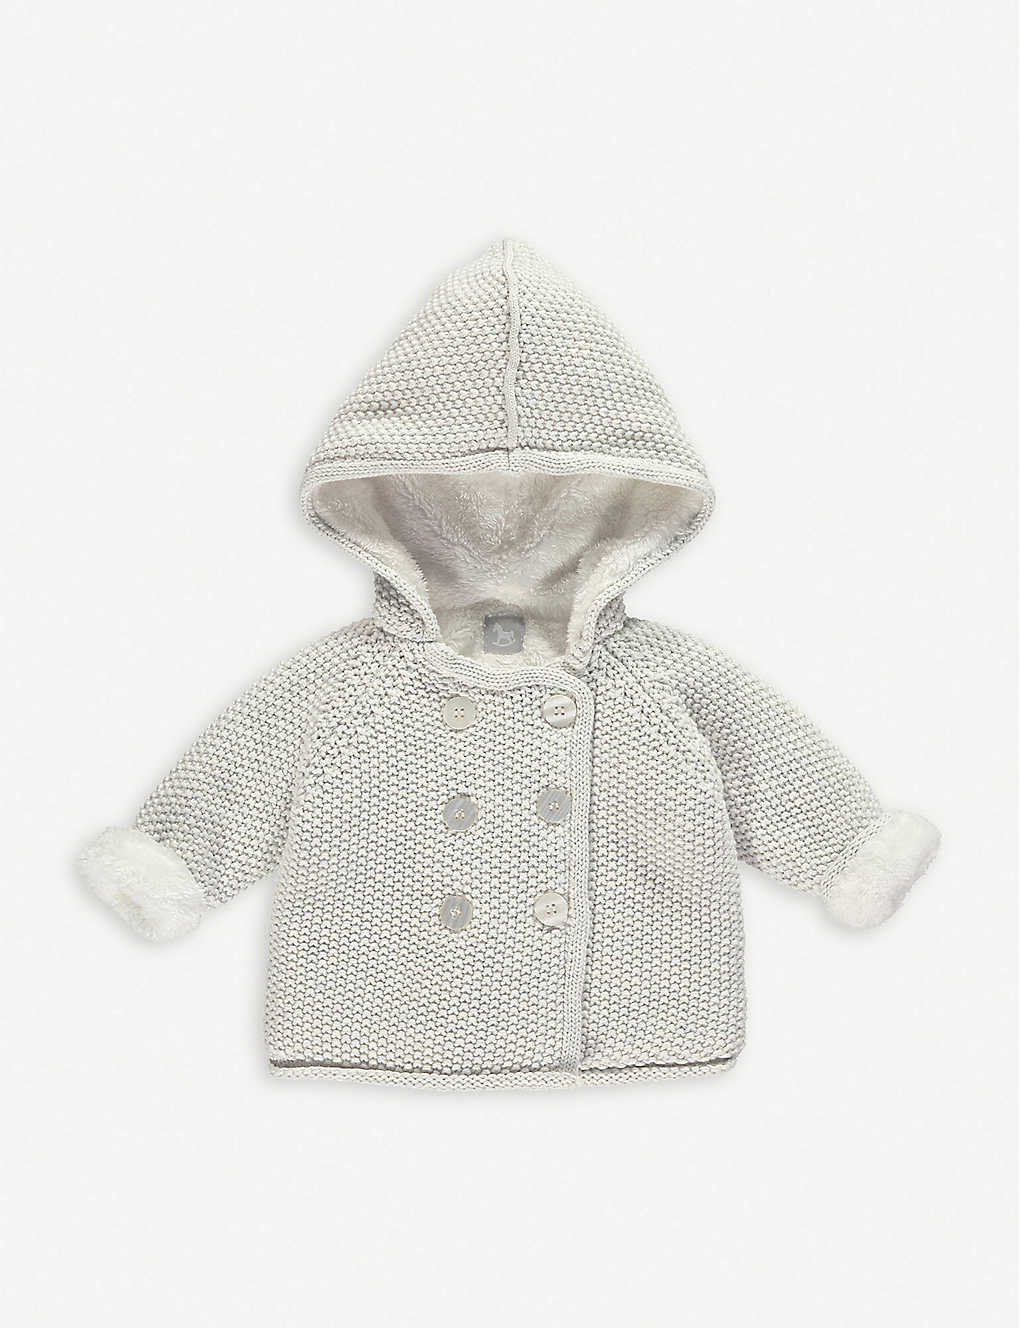 THE LITTLE TAILOR: Knitted cotton pixie jacket 0-12 months